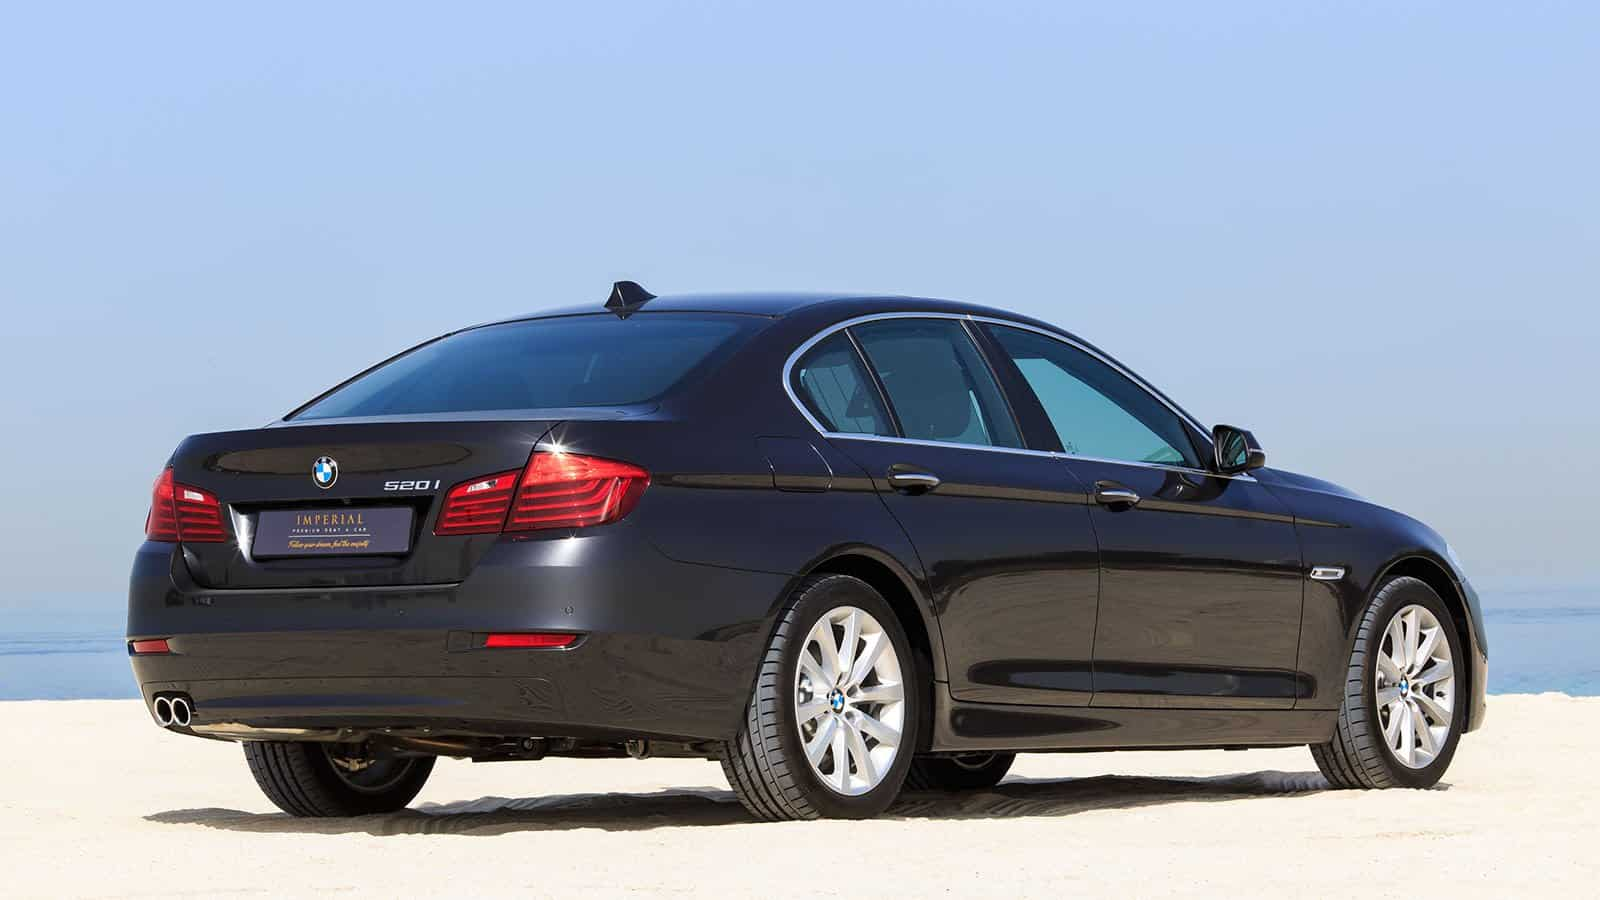 BMW 520i Dubai Car Rental